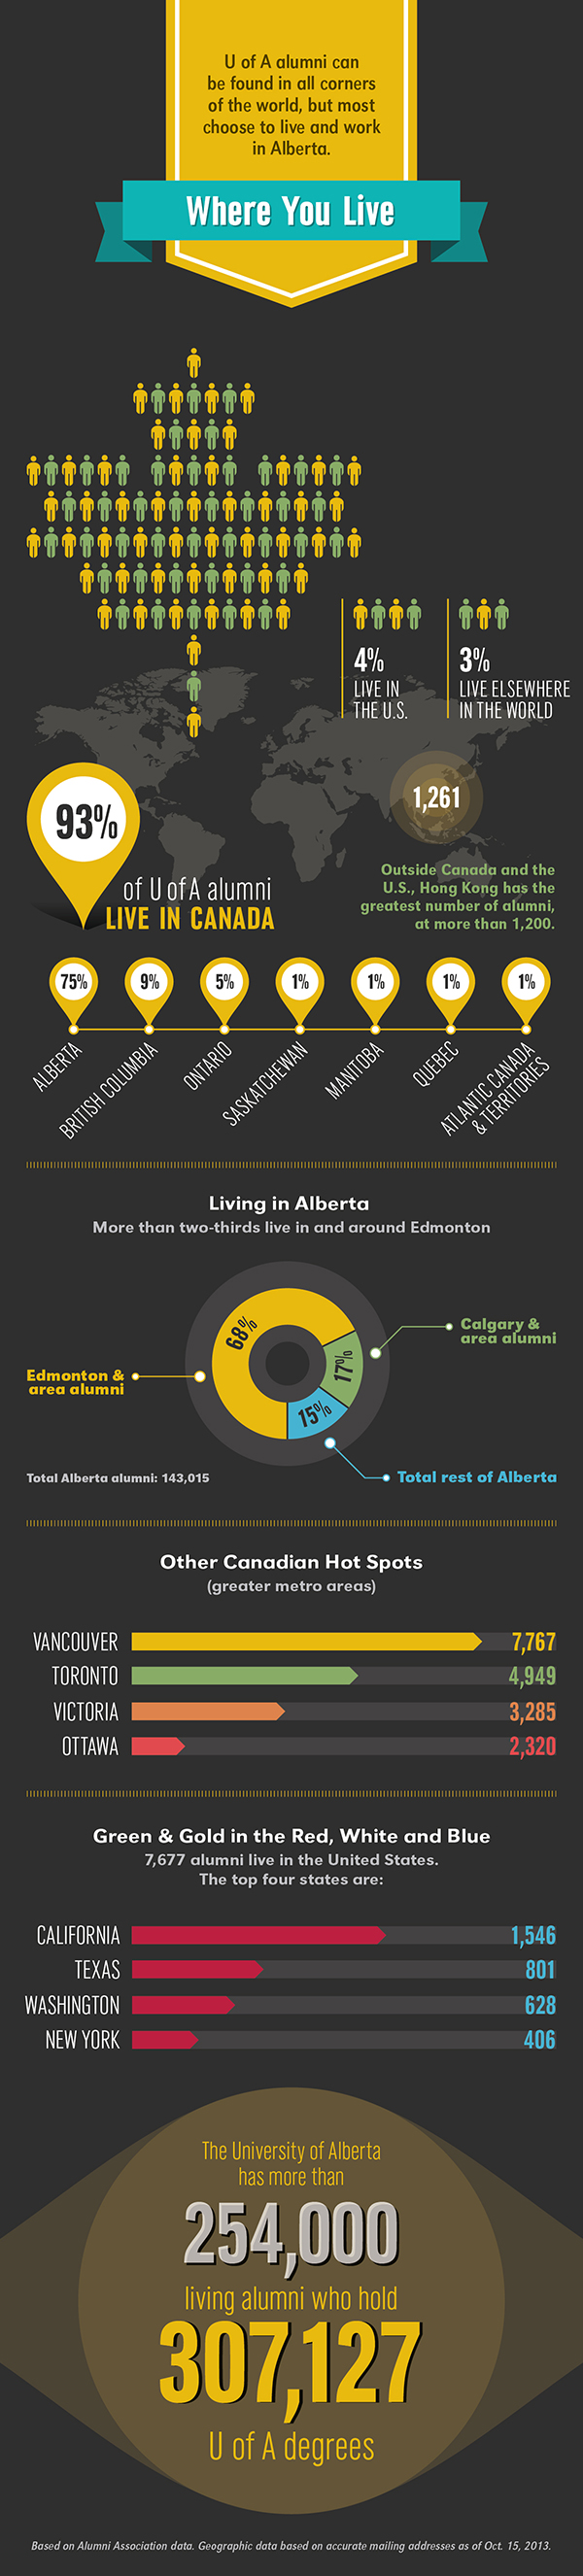 Where You Live Infographic